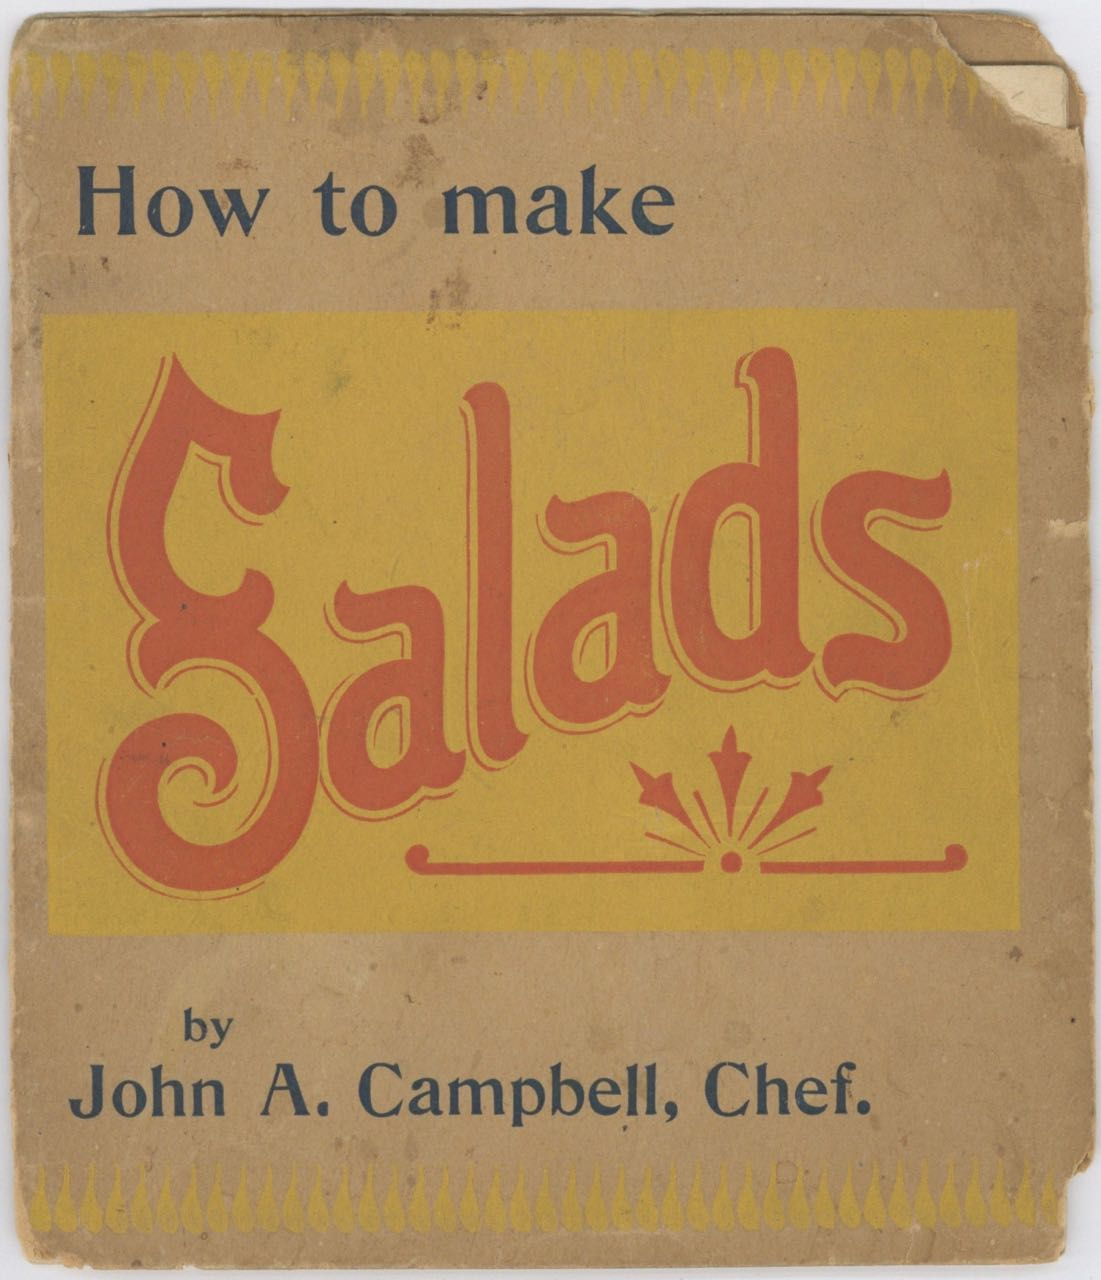 Mayonnaise or Salad Dressing for Salads. [cover title: How to Make Salads]. John A. Campbell, Chef, Horton-Cato Manufacturing Co, Mich Detroit.